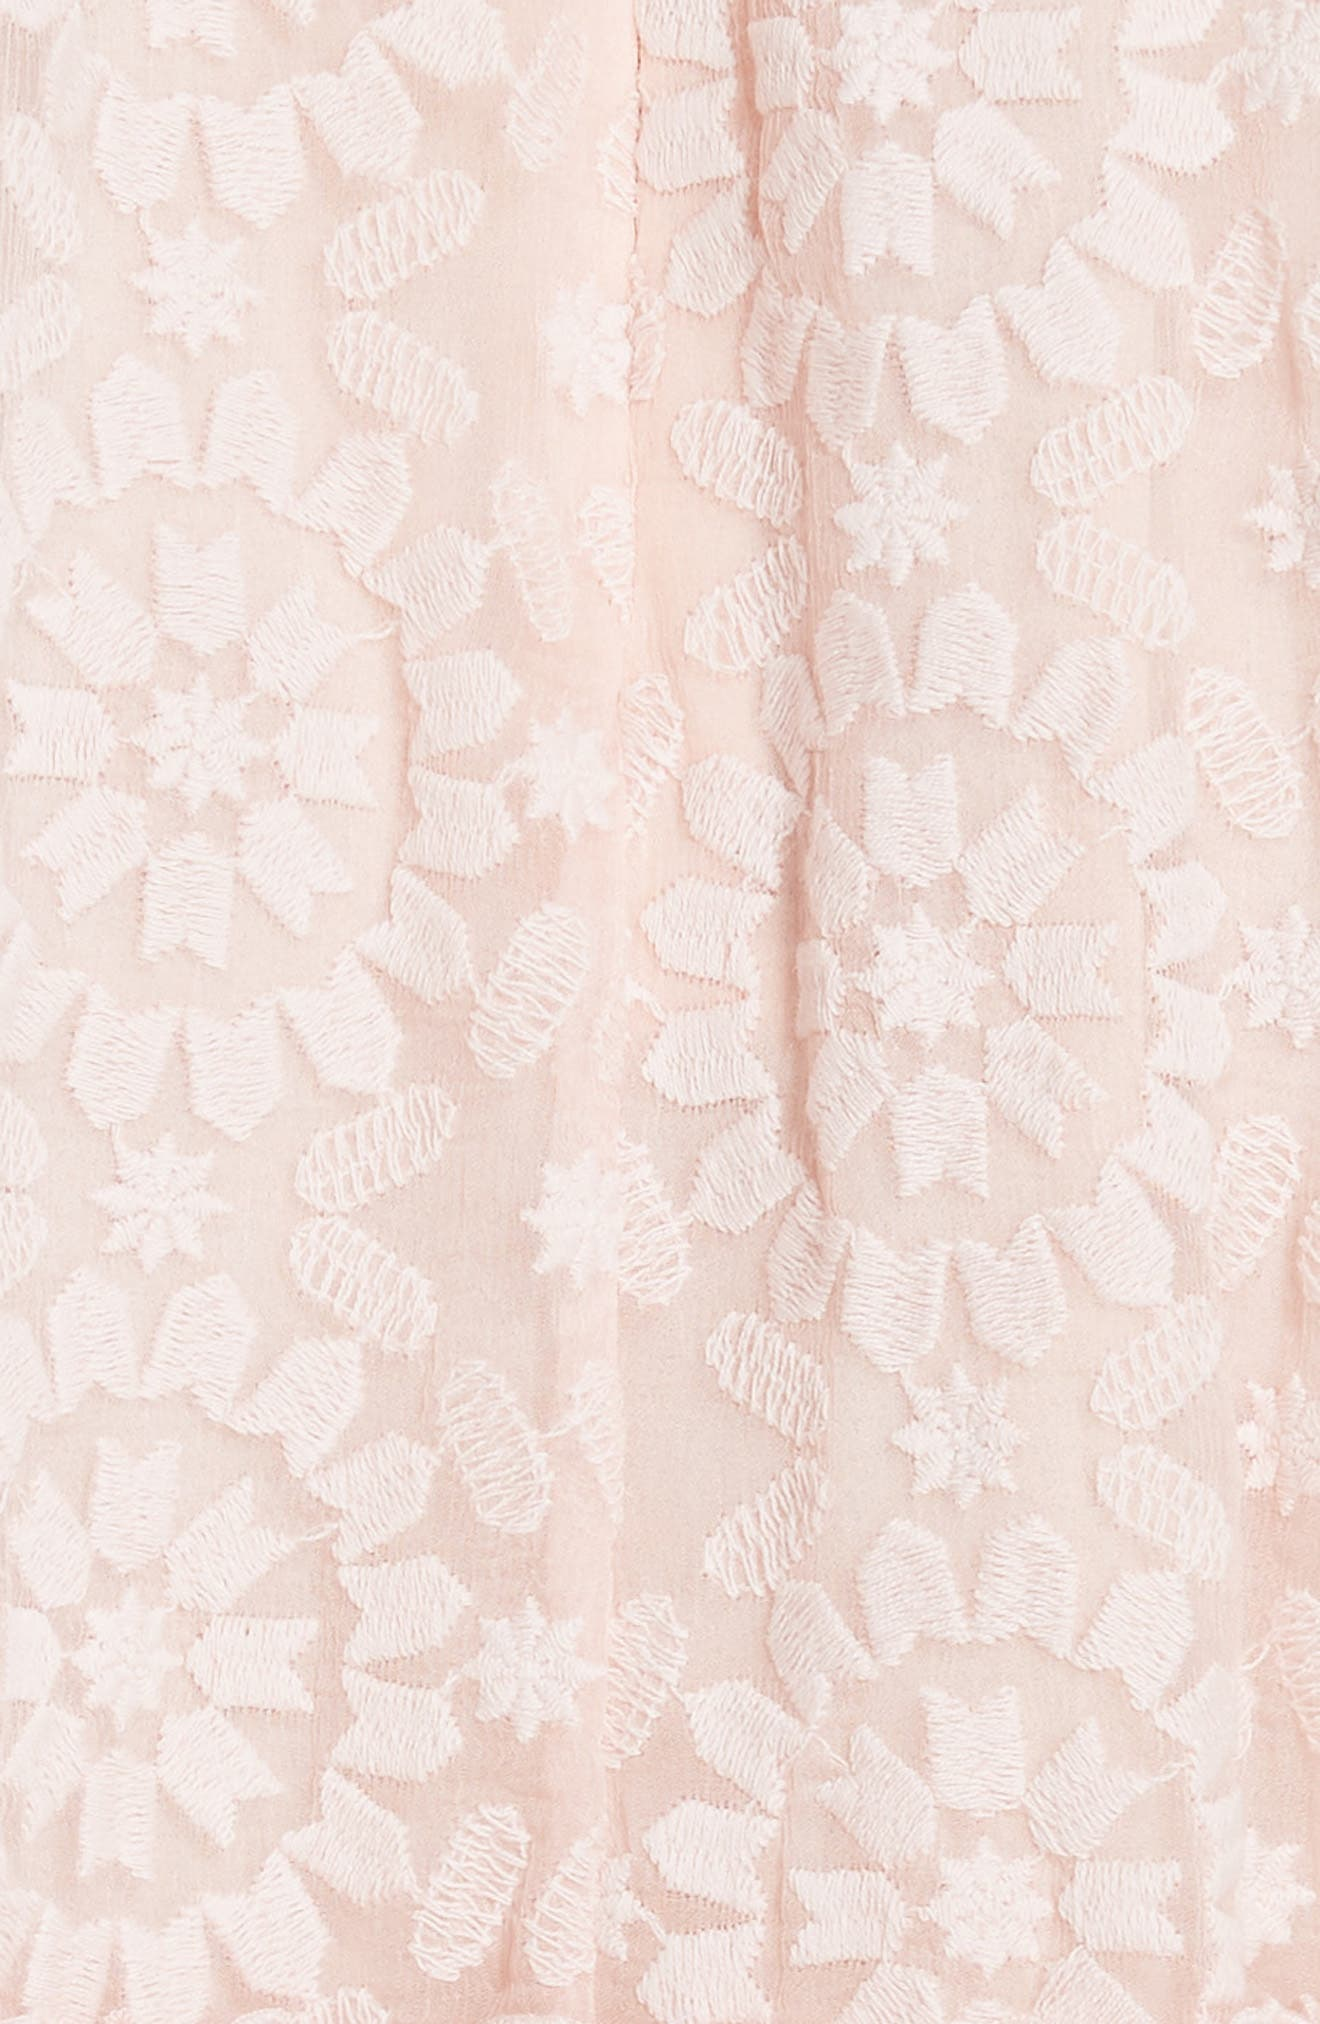 embroidered cotton & silk chiffon dress,                             Alternate thumbnail 3, color,                             Pearl  Pink